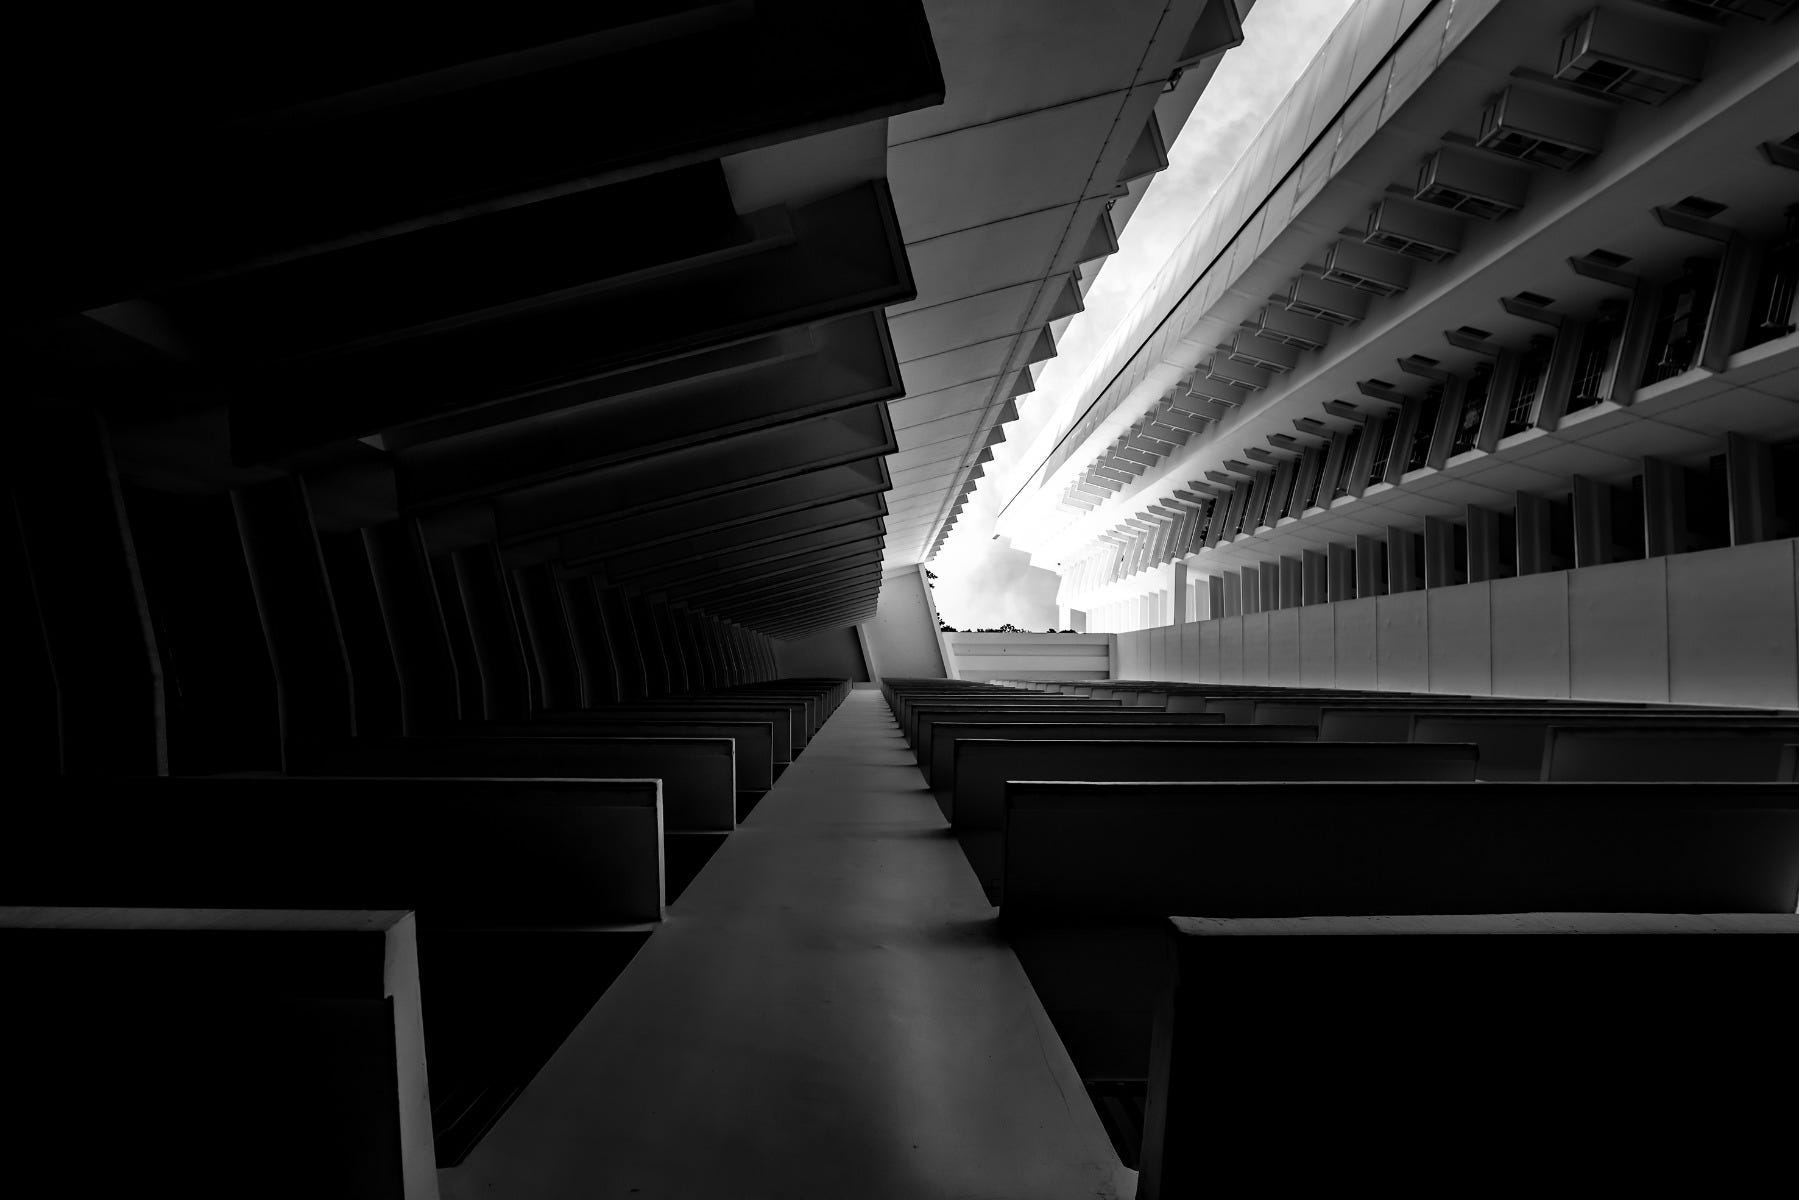 Black & White Fine Art Photography displaying the angles of a buildings as a tunnel